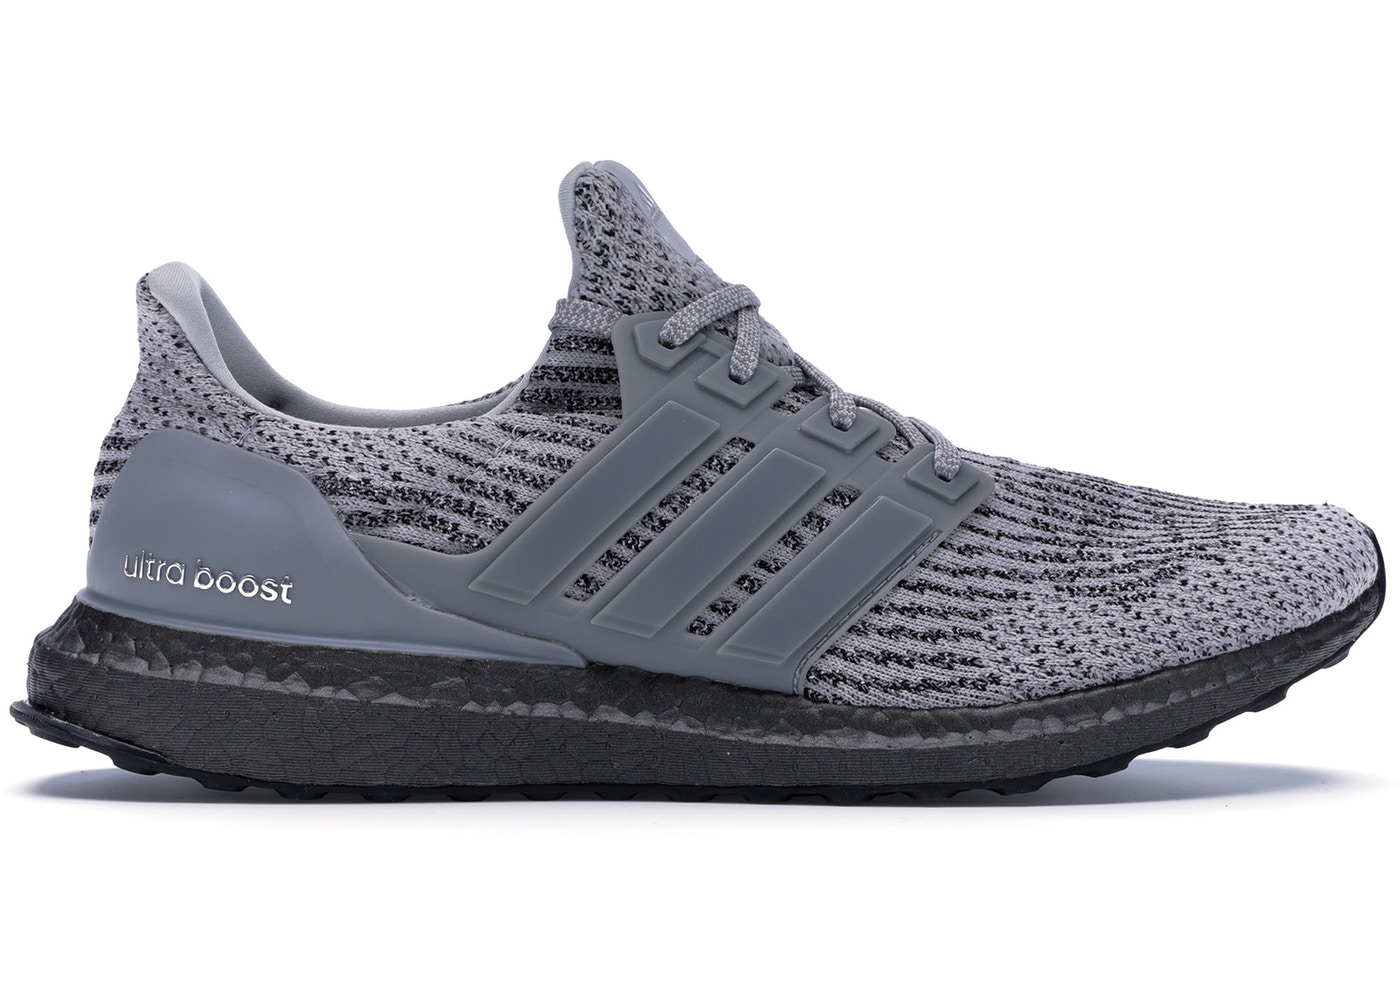 d9a243db7 adidas Ultra Boost 3.0 Triple Grey - CG3041